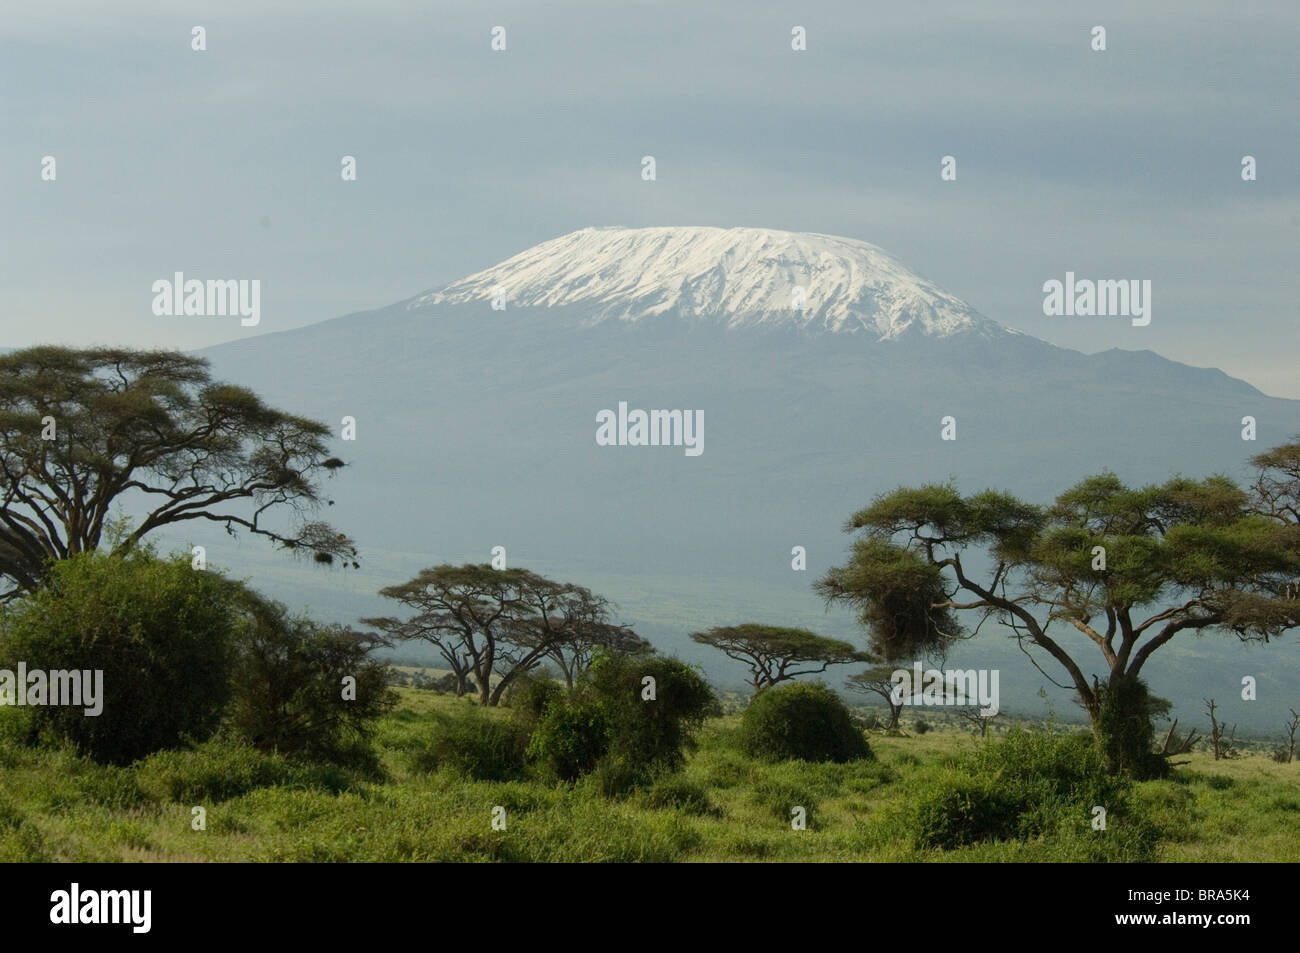 MOUNT KILIMANJARO WITH ACACIA TREES IN FOREGROUND - Stock Image